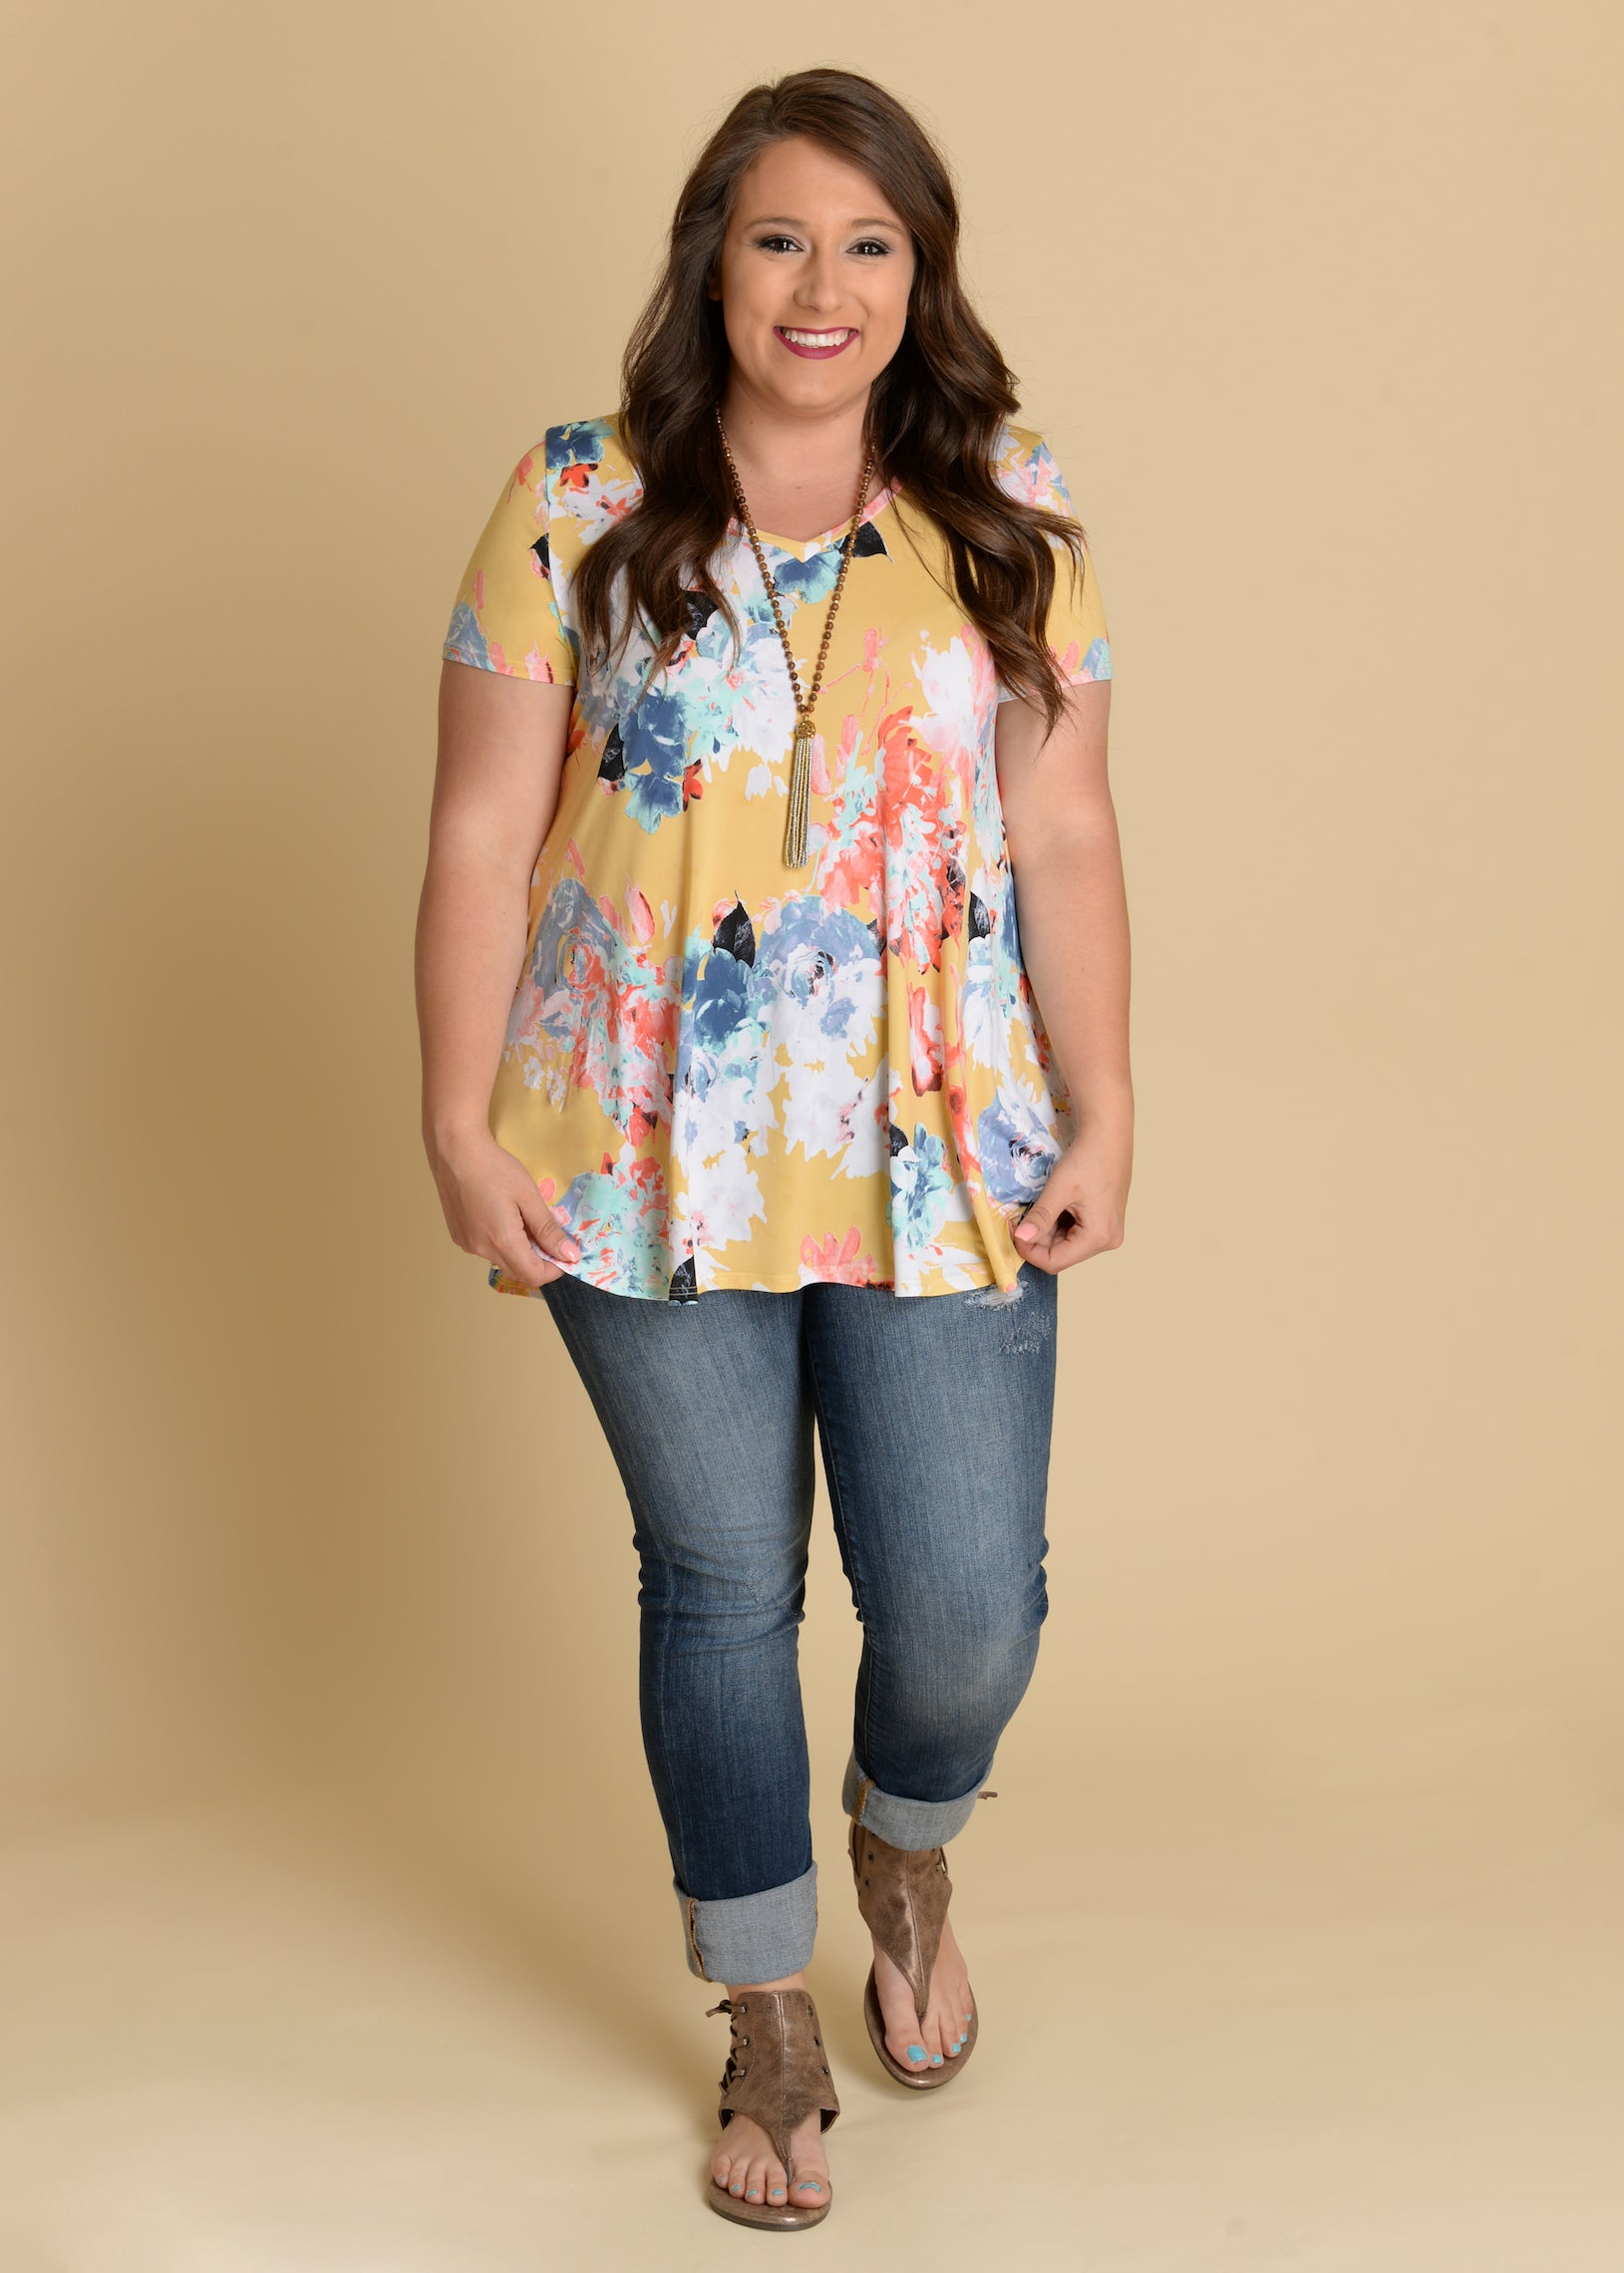 Hello Sunshine Top - FINAL SALE